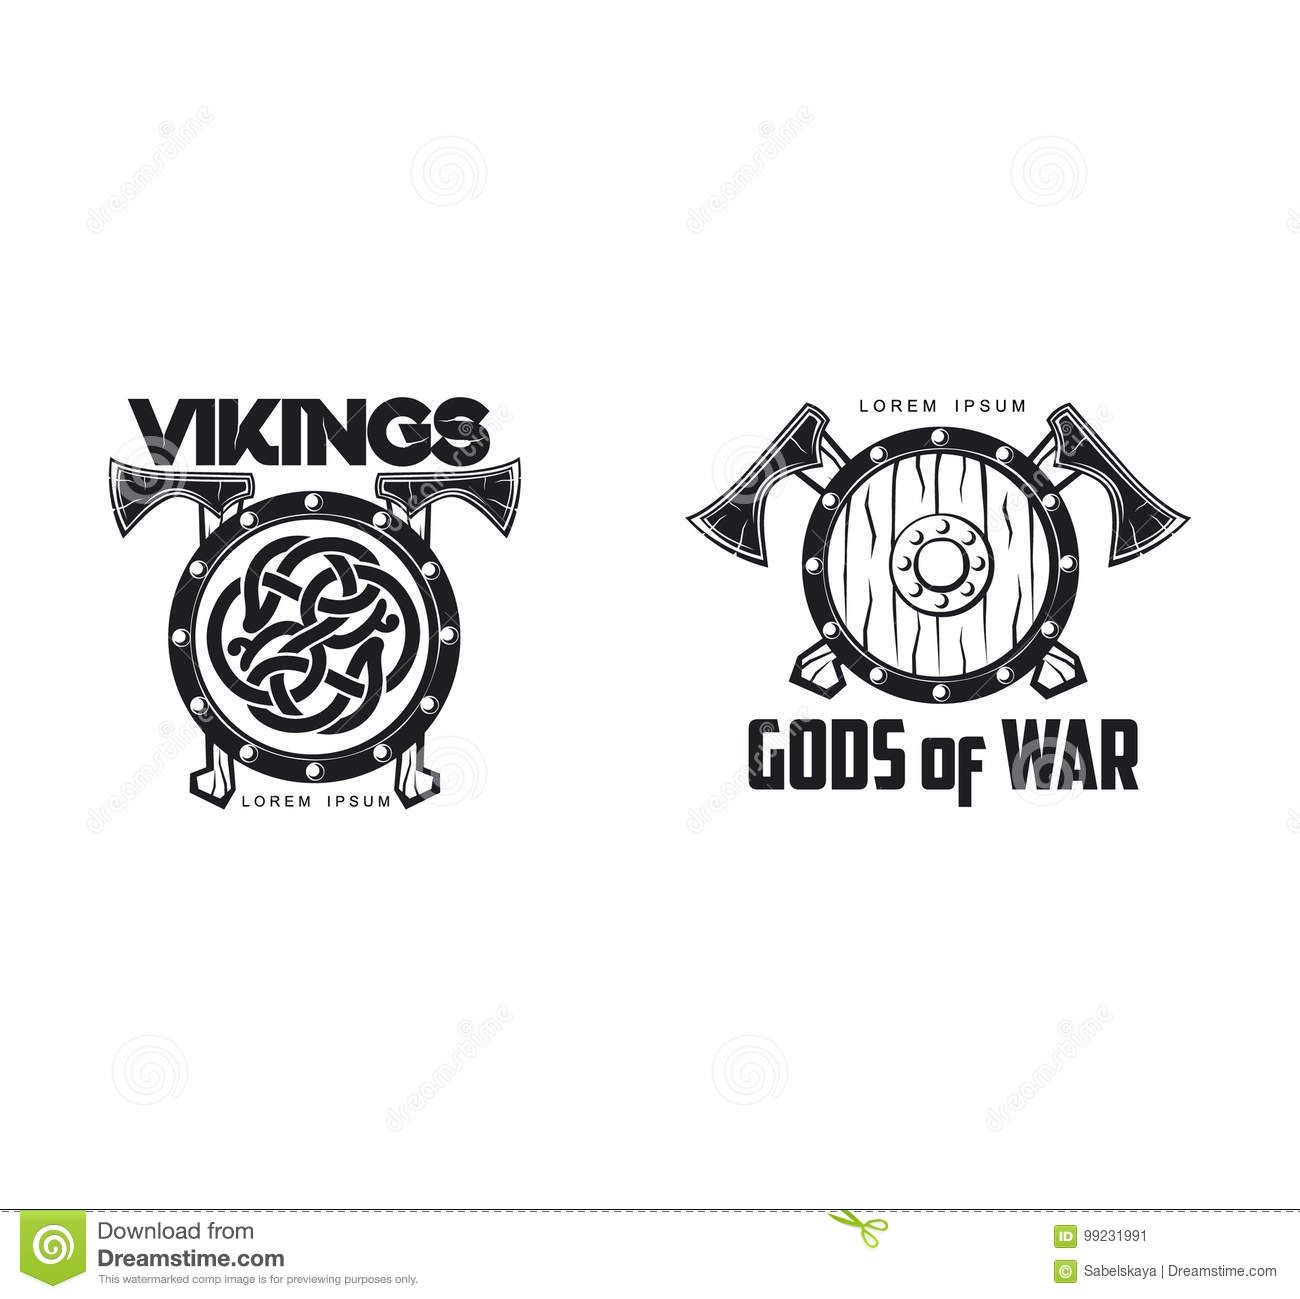 1633bb4967972 Vector vikings gods of war icon logo template design set simple flat  isolated illustration on a white background. Axes and shield with pattern  image